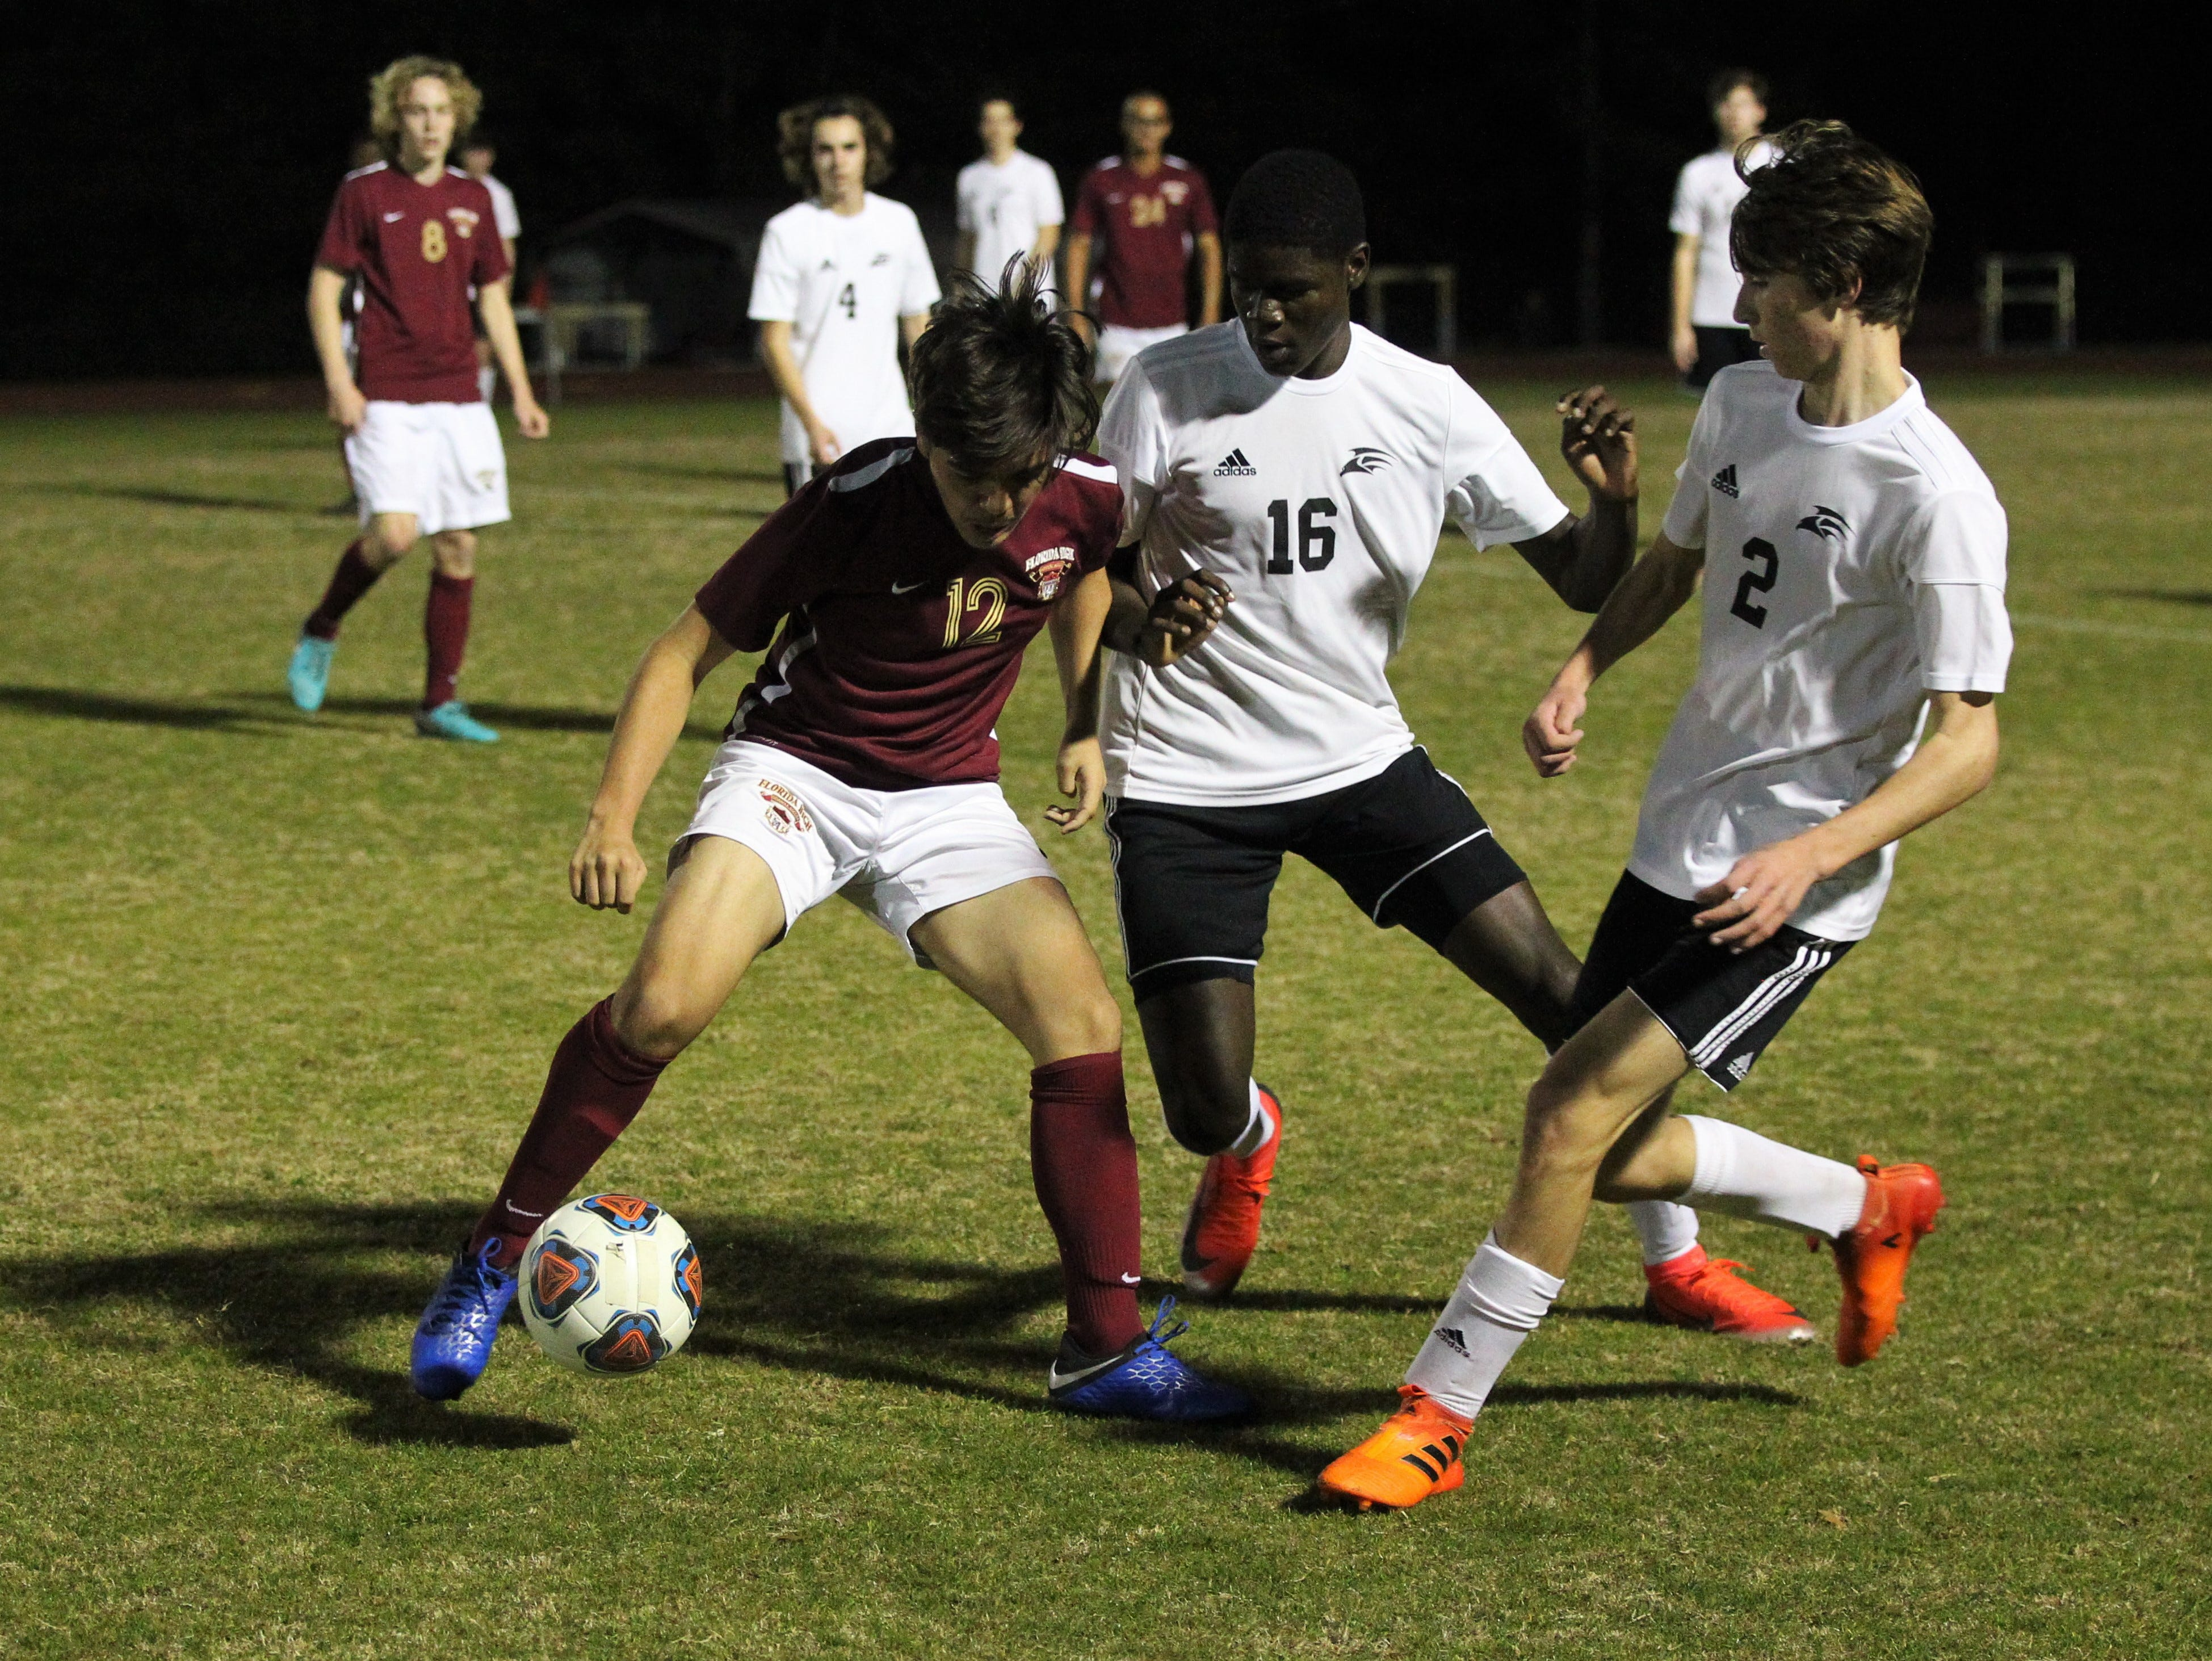 Florida High's Josh Limburg fights for possession as Florida High's boys soccer team beat South Walton 2-0 during a Region 1-2A quarterfinal on Feb. 6, 2018.